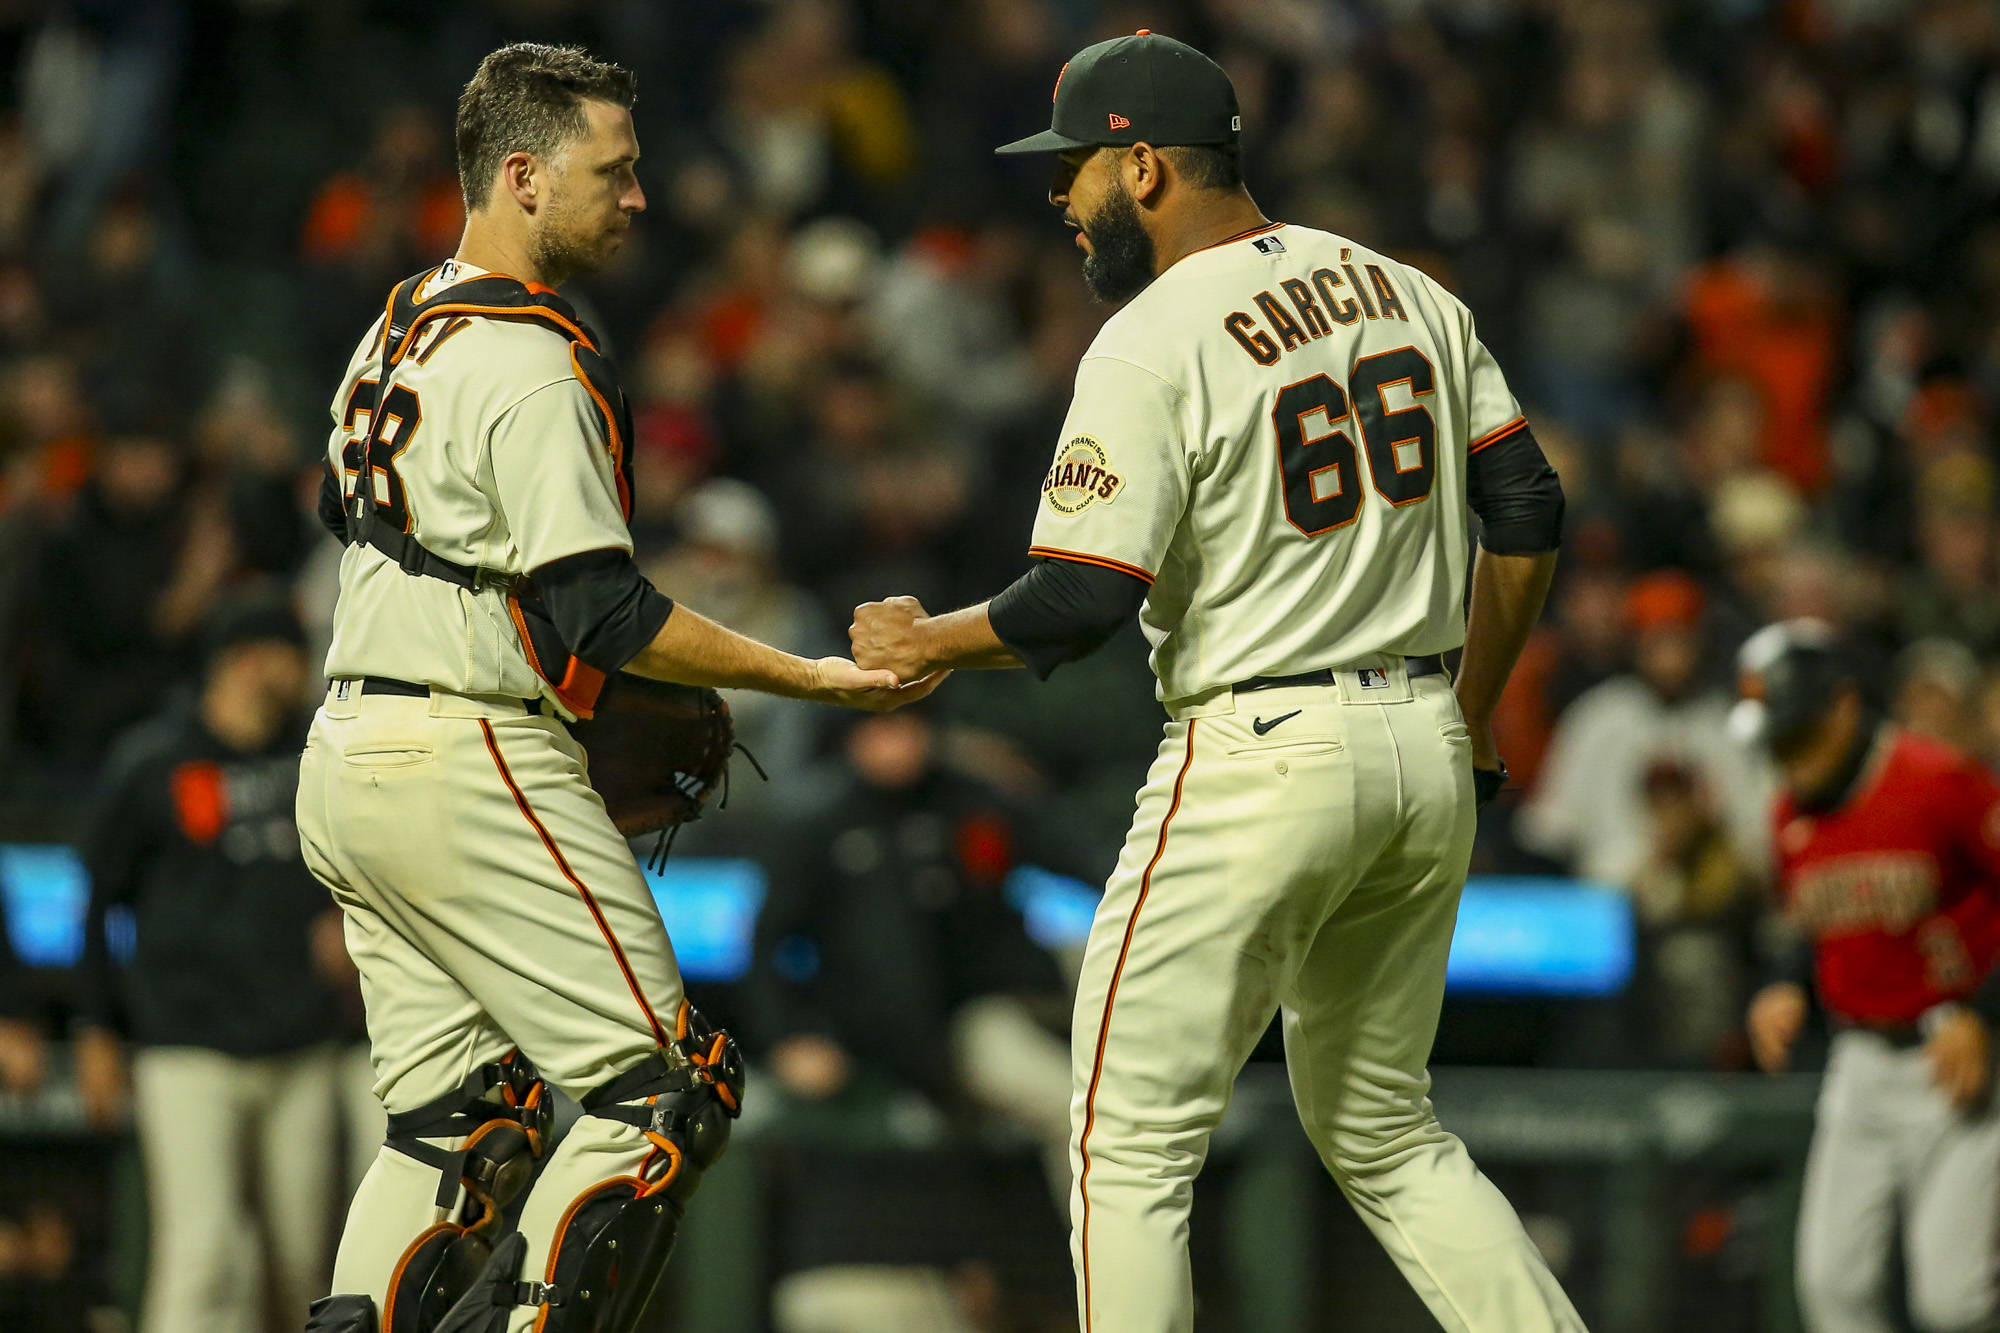 Giants catcher Buster Posey, left, congratulated pitcher Jarlin Garcia after closing out the game with a save and the win over the Diamondbacks at Oracle Park on Aug. 11. (Chris Victorio/Special to The Examiner)